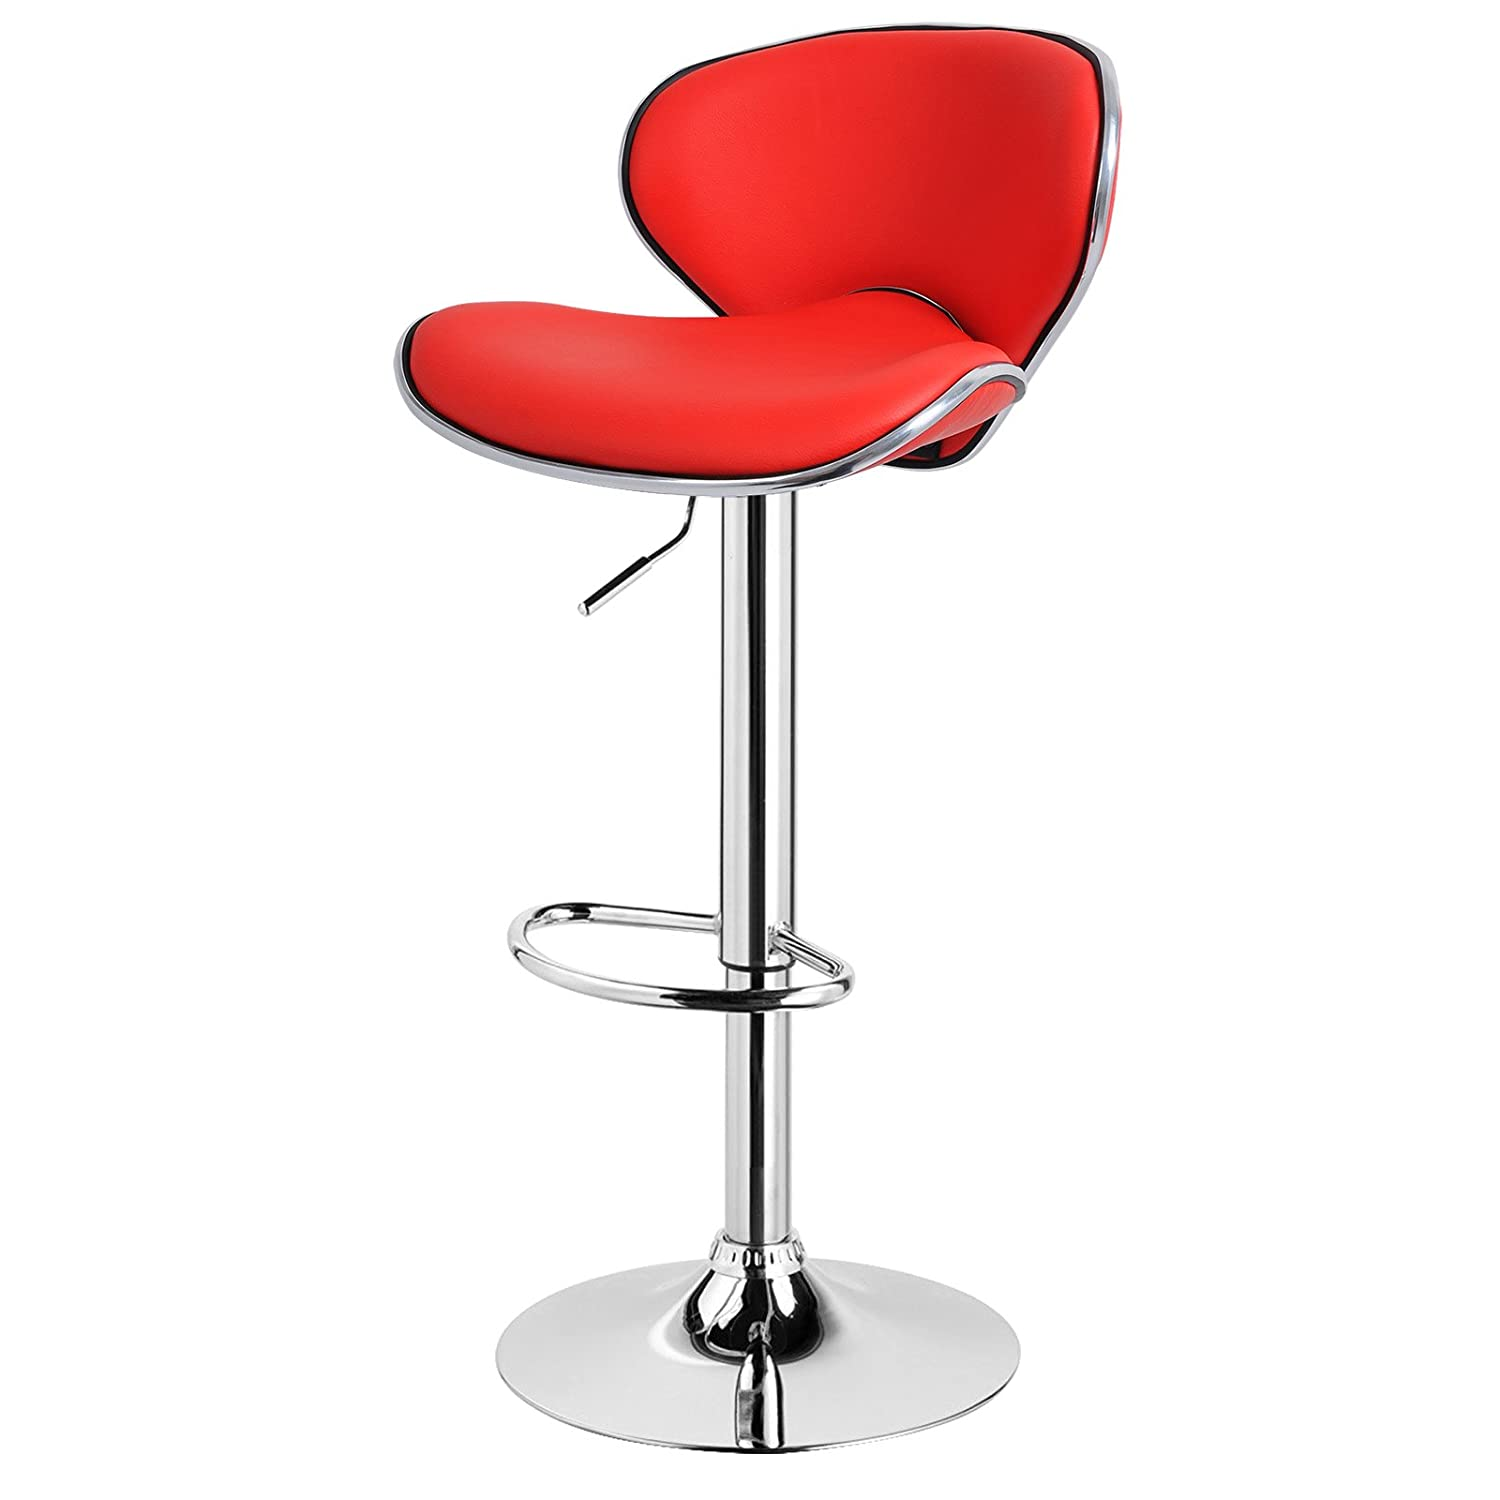 EUGAD 1 x Bar Stools with Backrest Gas Lift Adjustable Chair Swivel Hydraulic Chair Home and Kitchen Stools, Red